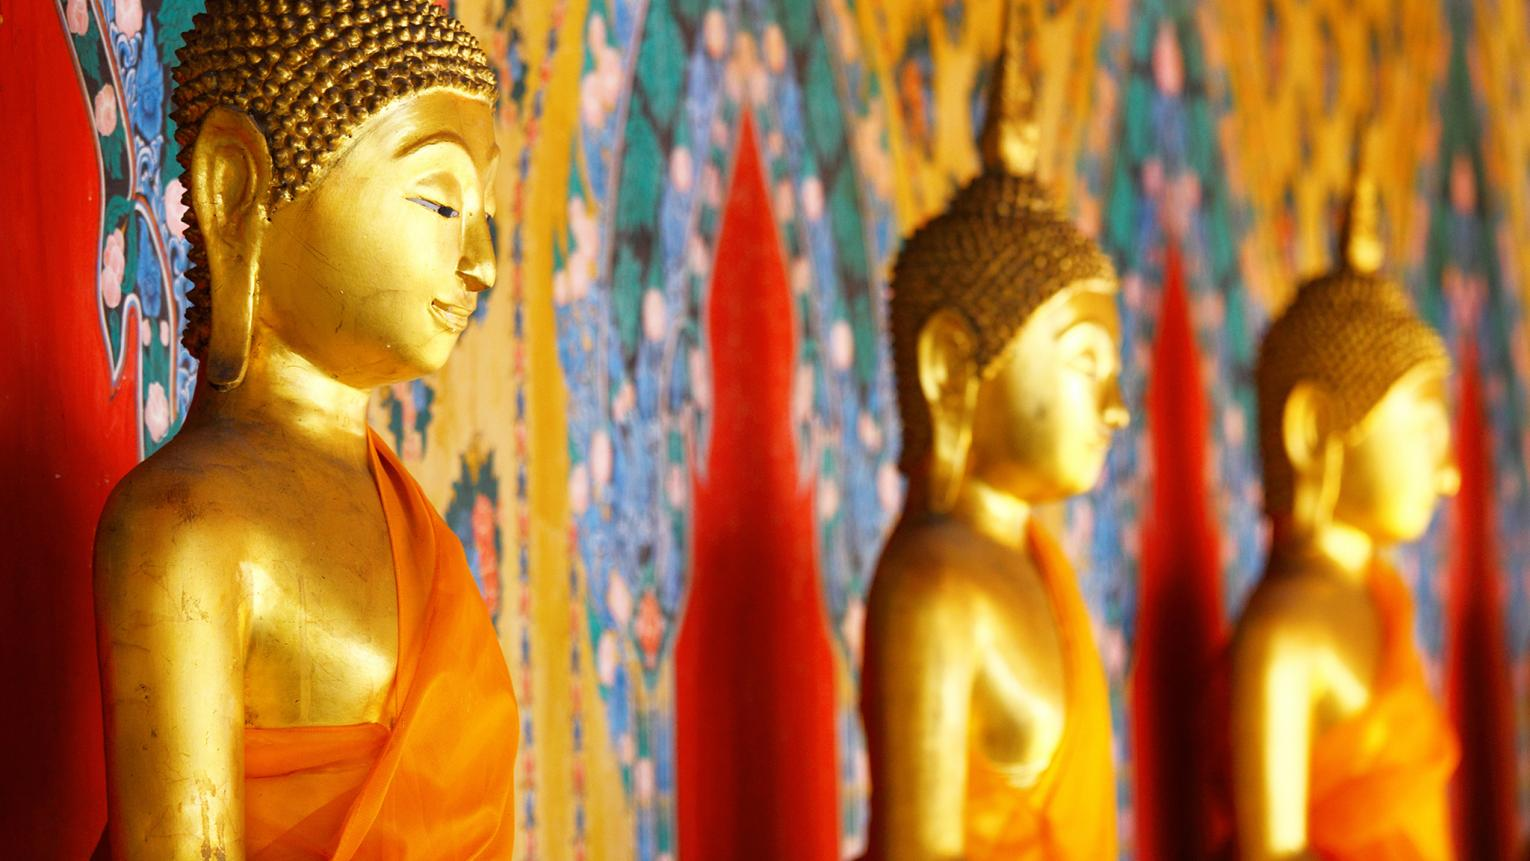 Gold Buddha statues sit against beautiful gold, red and blue material.